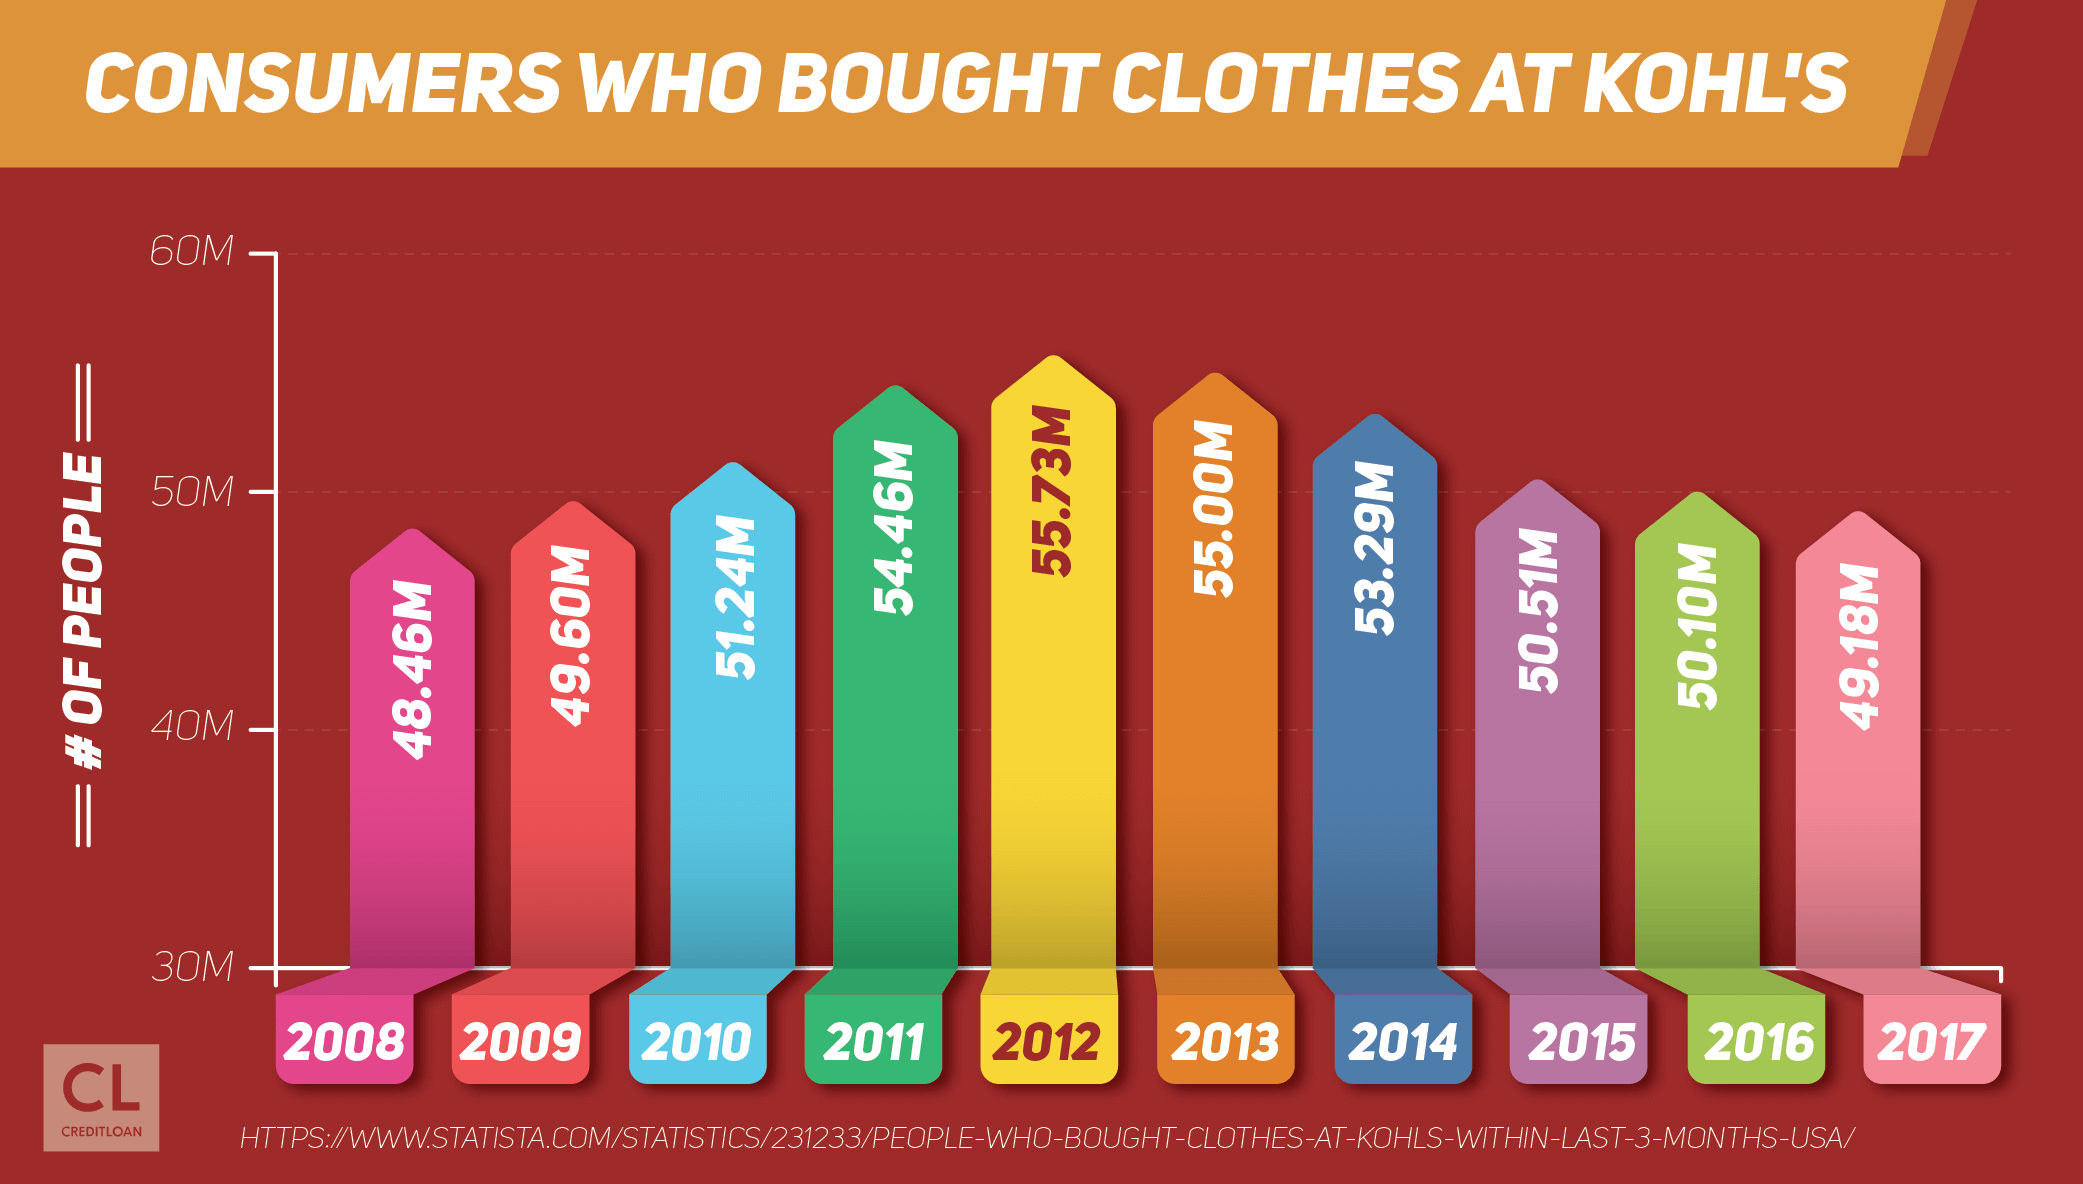 Consumers Who Bought Clothes At Kohl's from 2008-2017